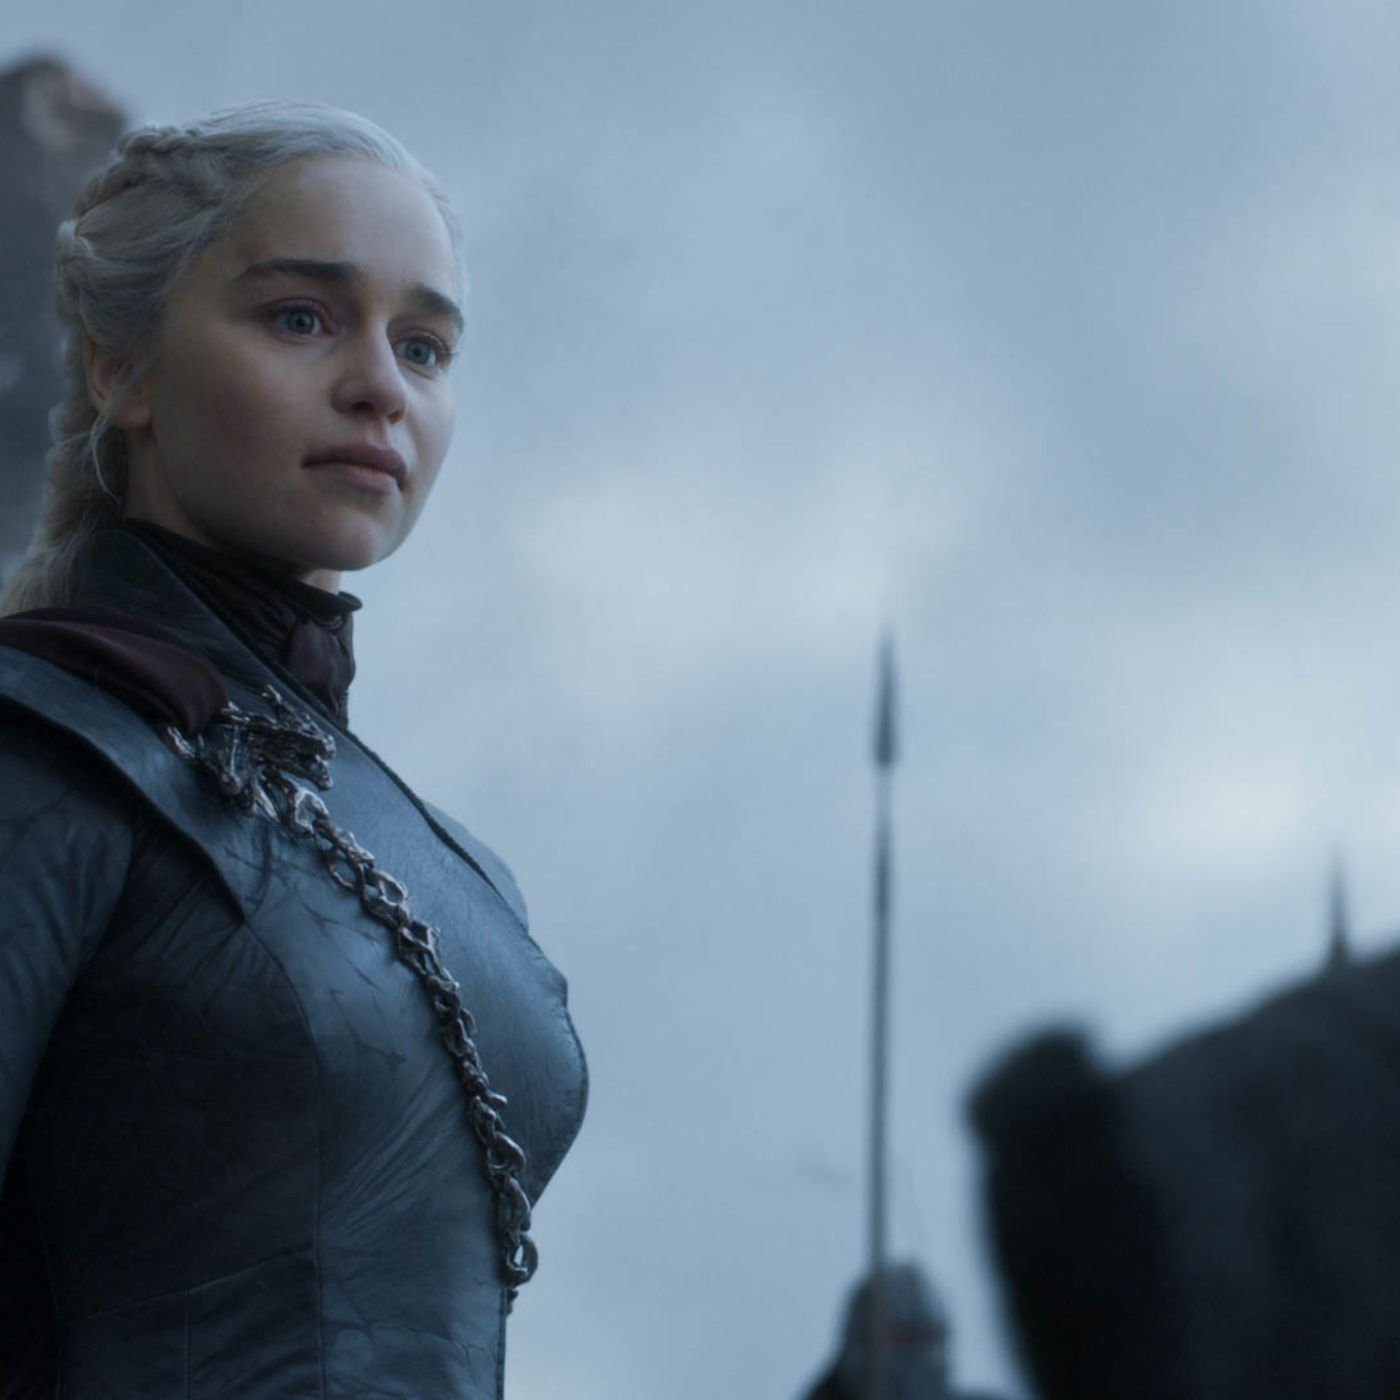 theverge.com - Julia Alexander - Game of Game of Thrones: The Iron Throne